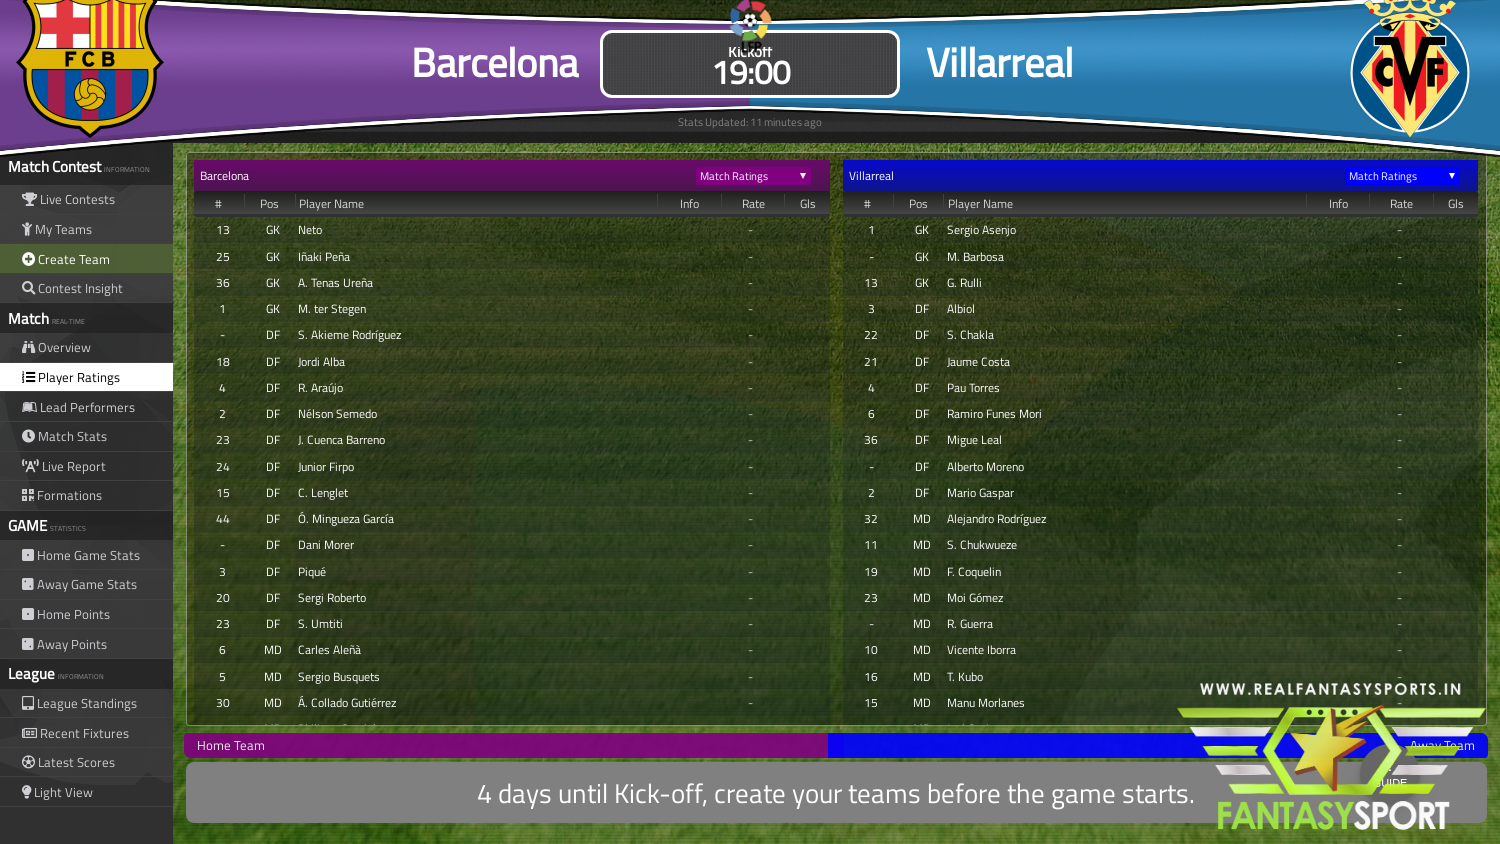 Fantasy Football Barcelona Vs Villarreal Sunday 27th September 2020